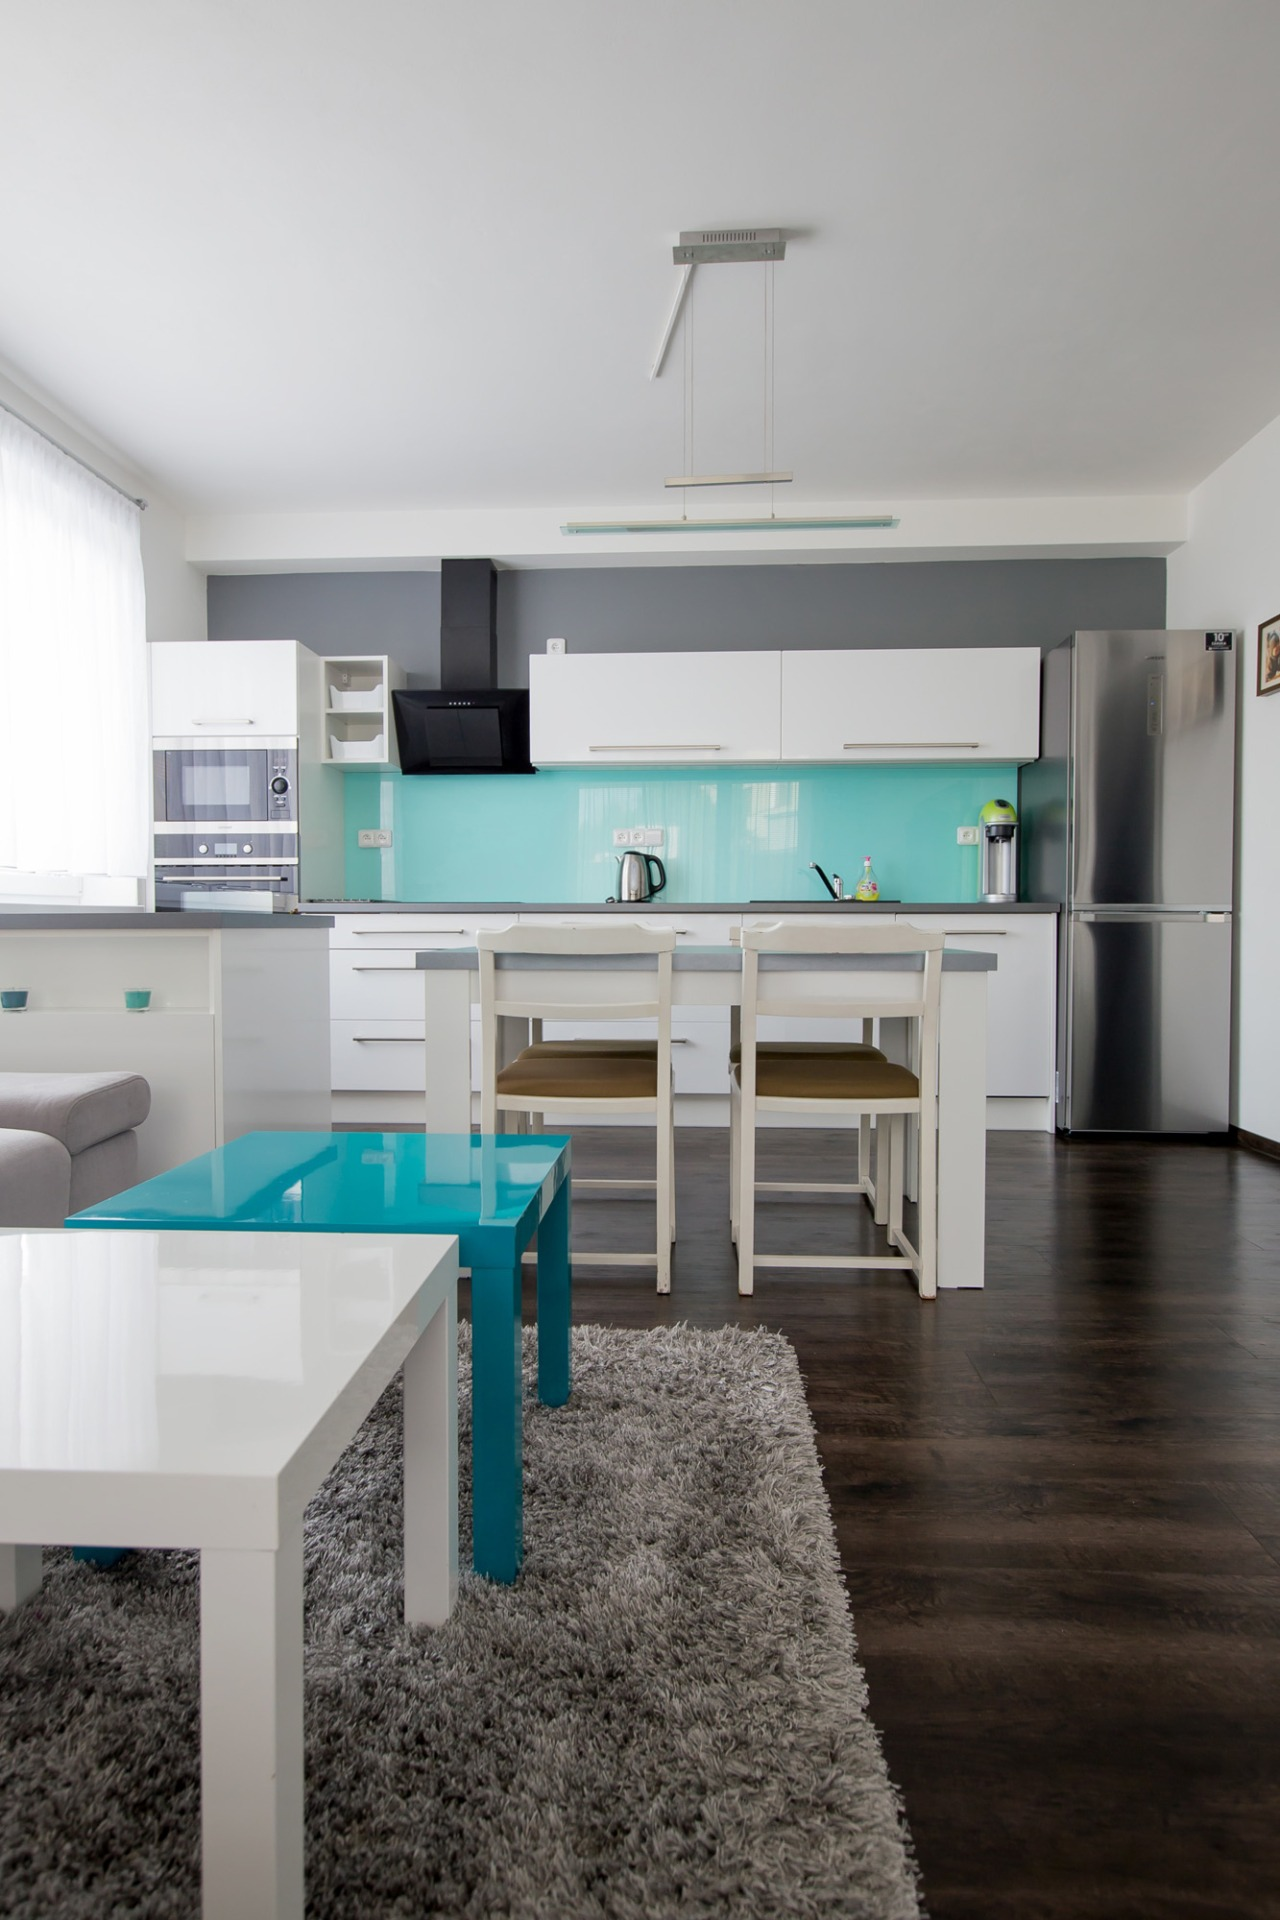 The combined living space with turquoise | Barbora Grünwaldov á